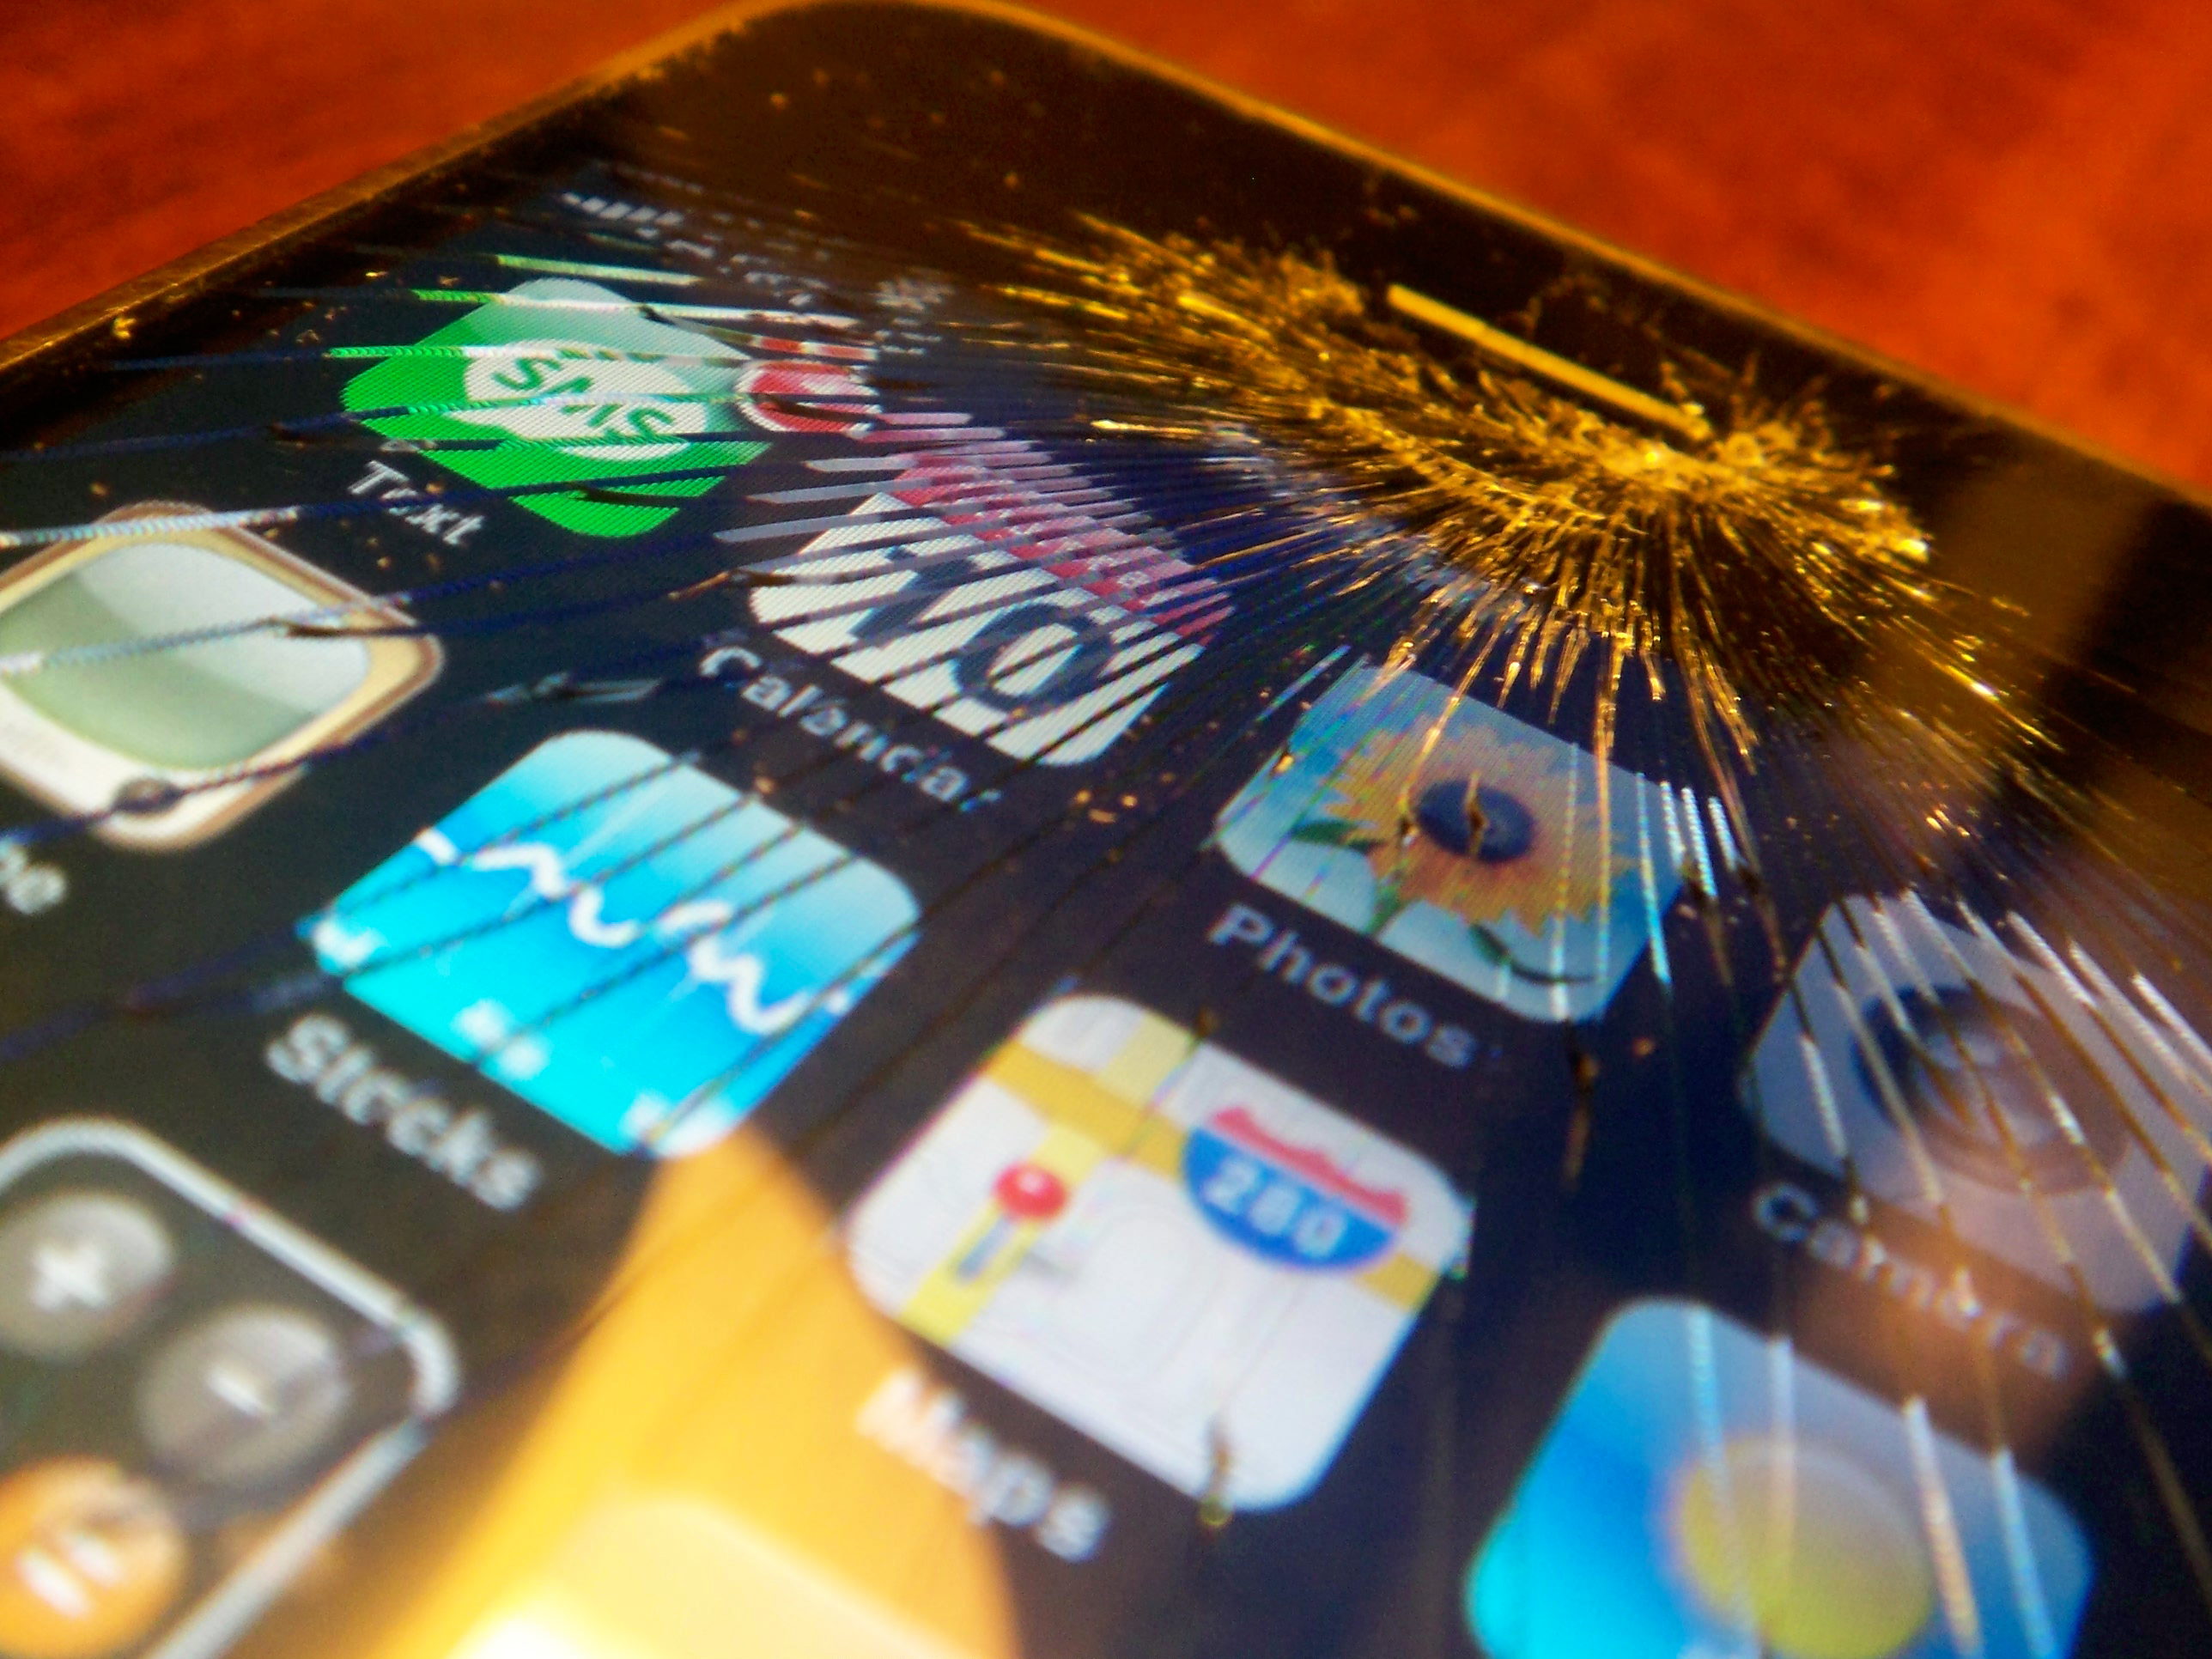 Apple will soon launch a broken iPhone upgrade program